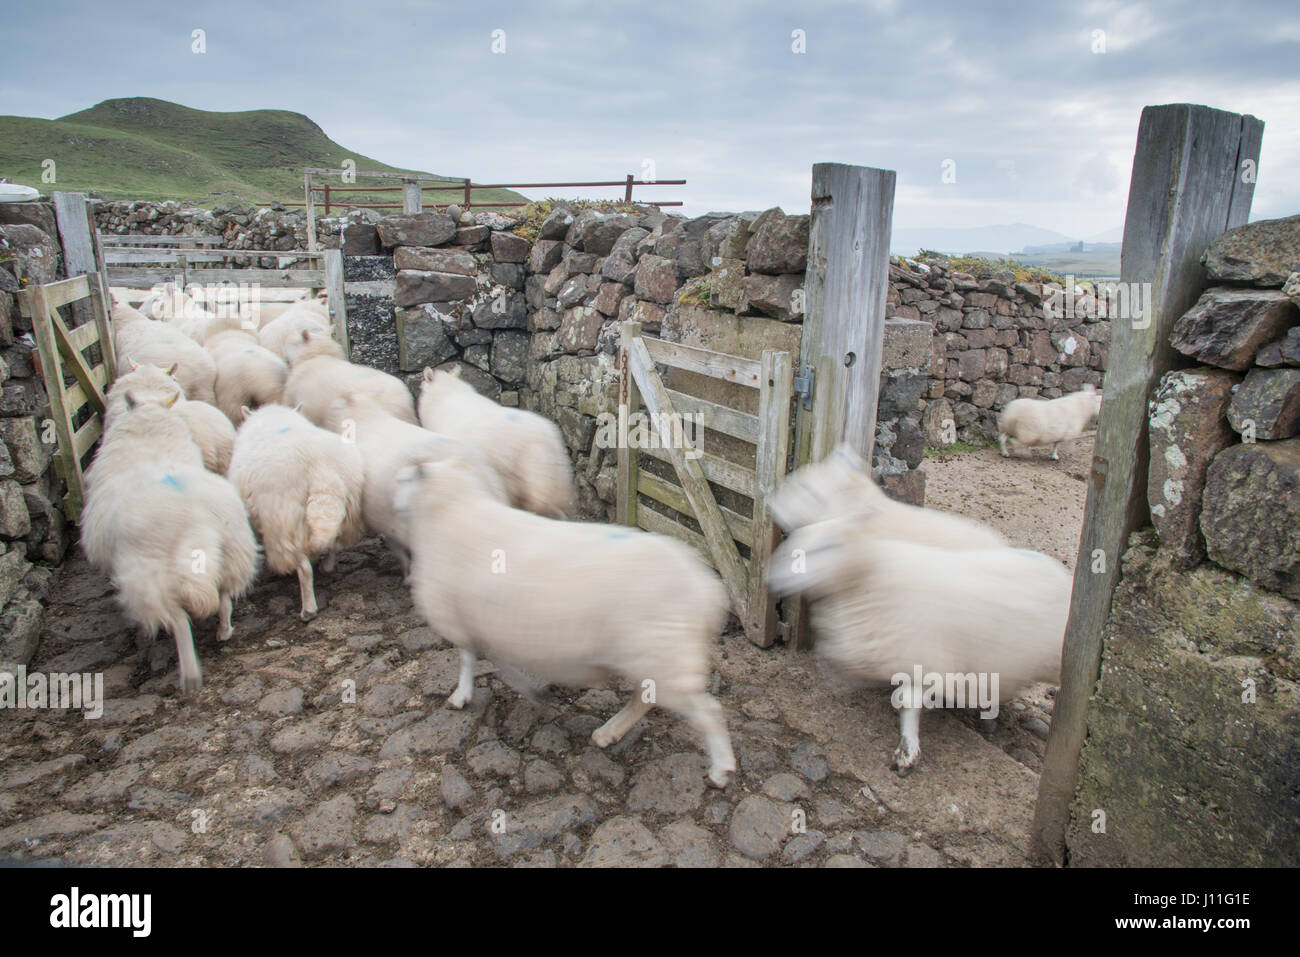 Farmer checking his sheep for infection on the island of Canna, Inner Hebrides, Scotland - Stock Image